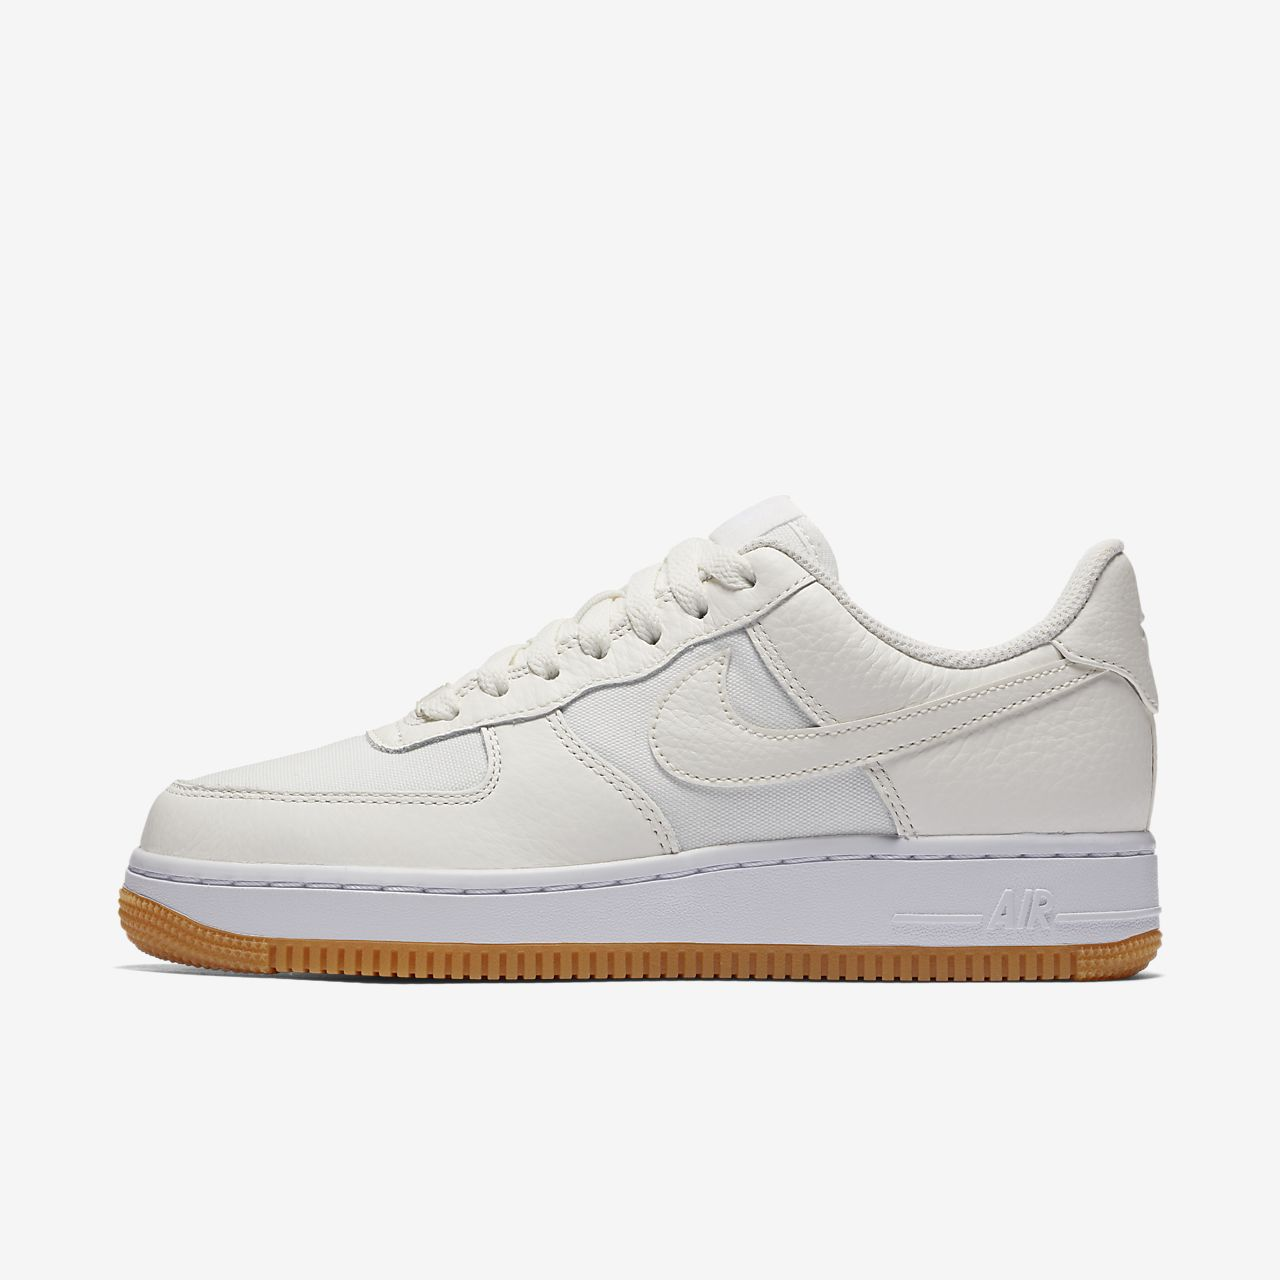 nike air force 1 '07 basso premio donne ua